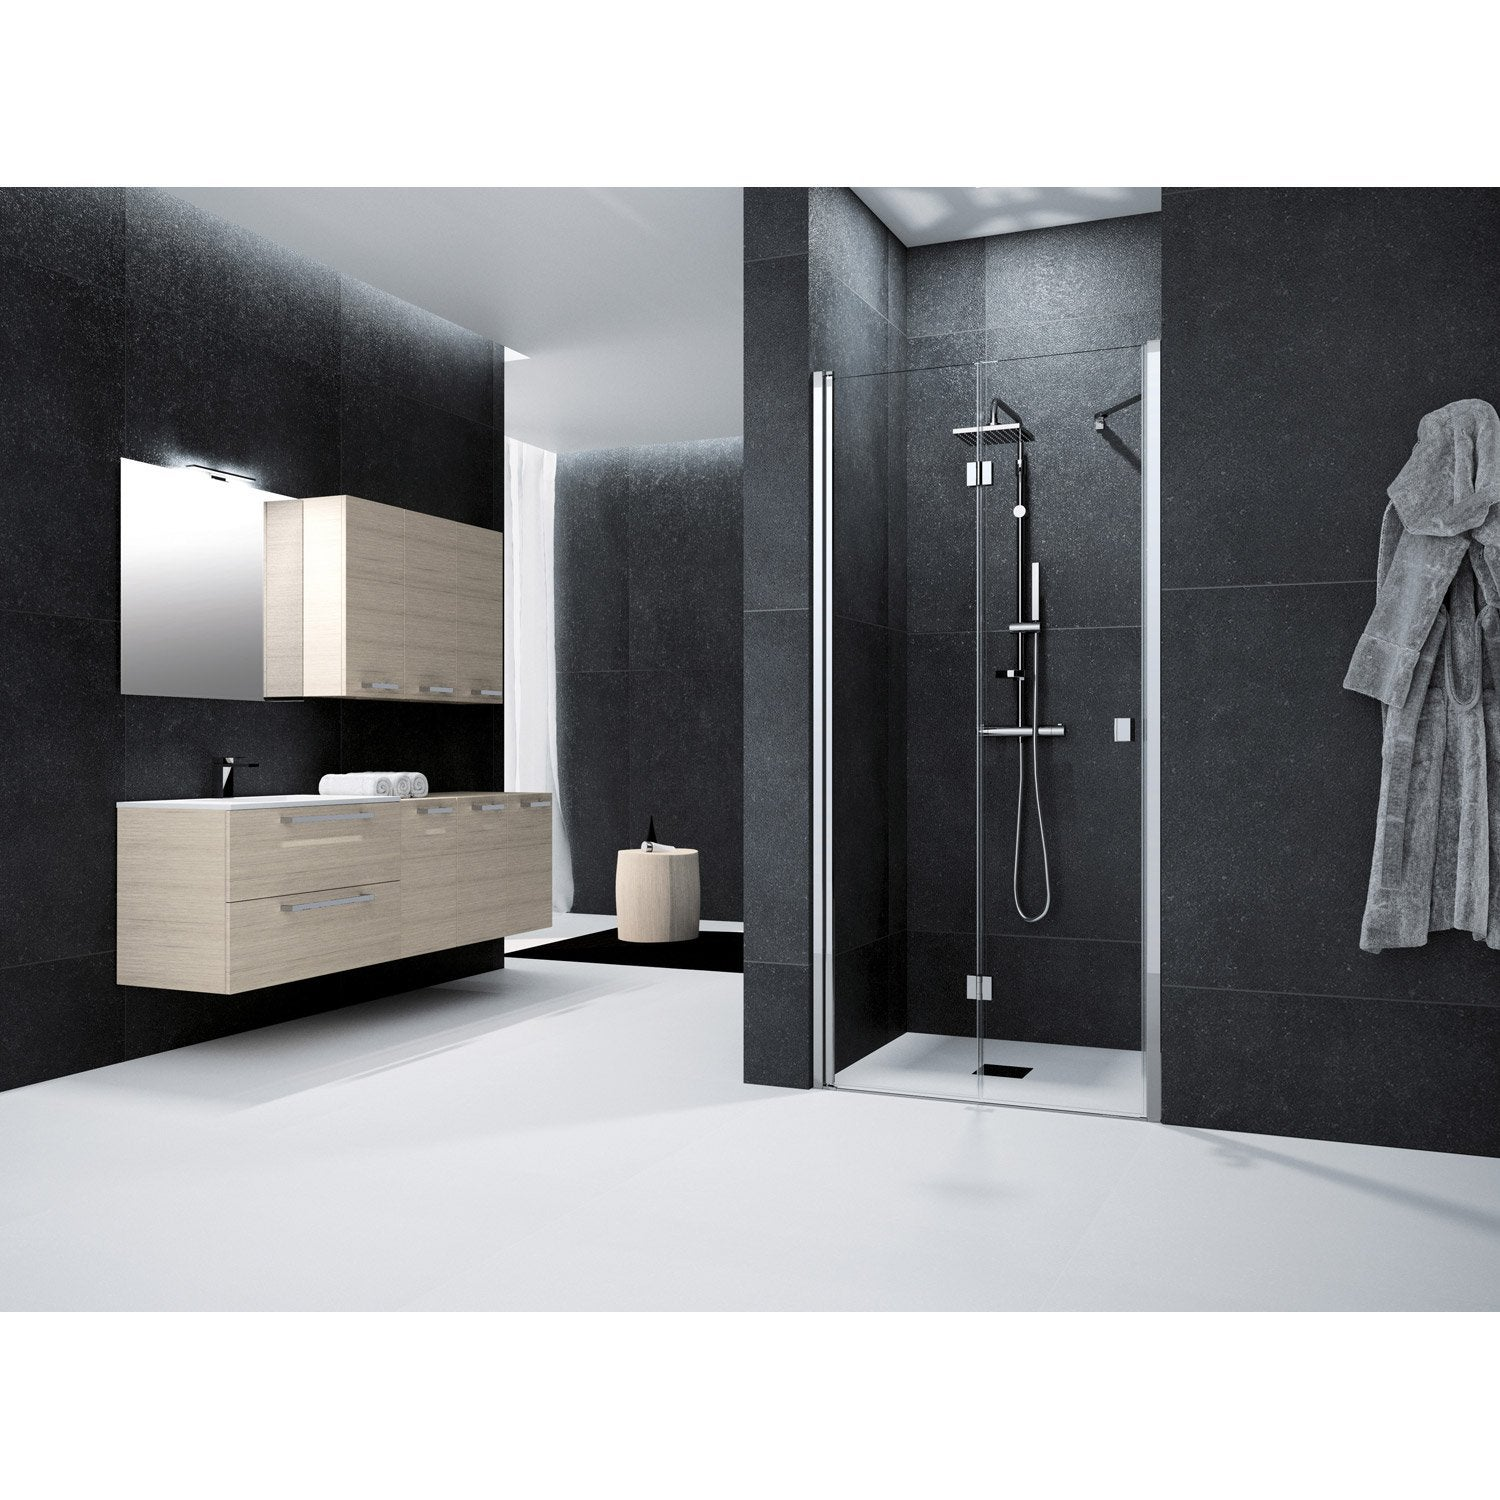 porte de douche pivot pliante 80 cm transparent neo leroy merlin. Black Bedroom Furniture Sets. Home Design Ideas